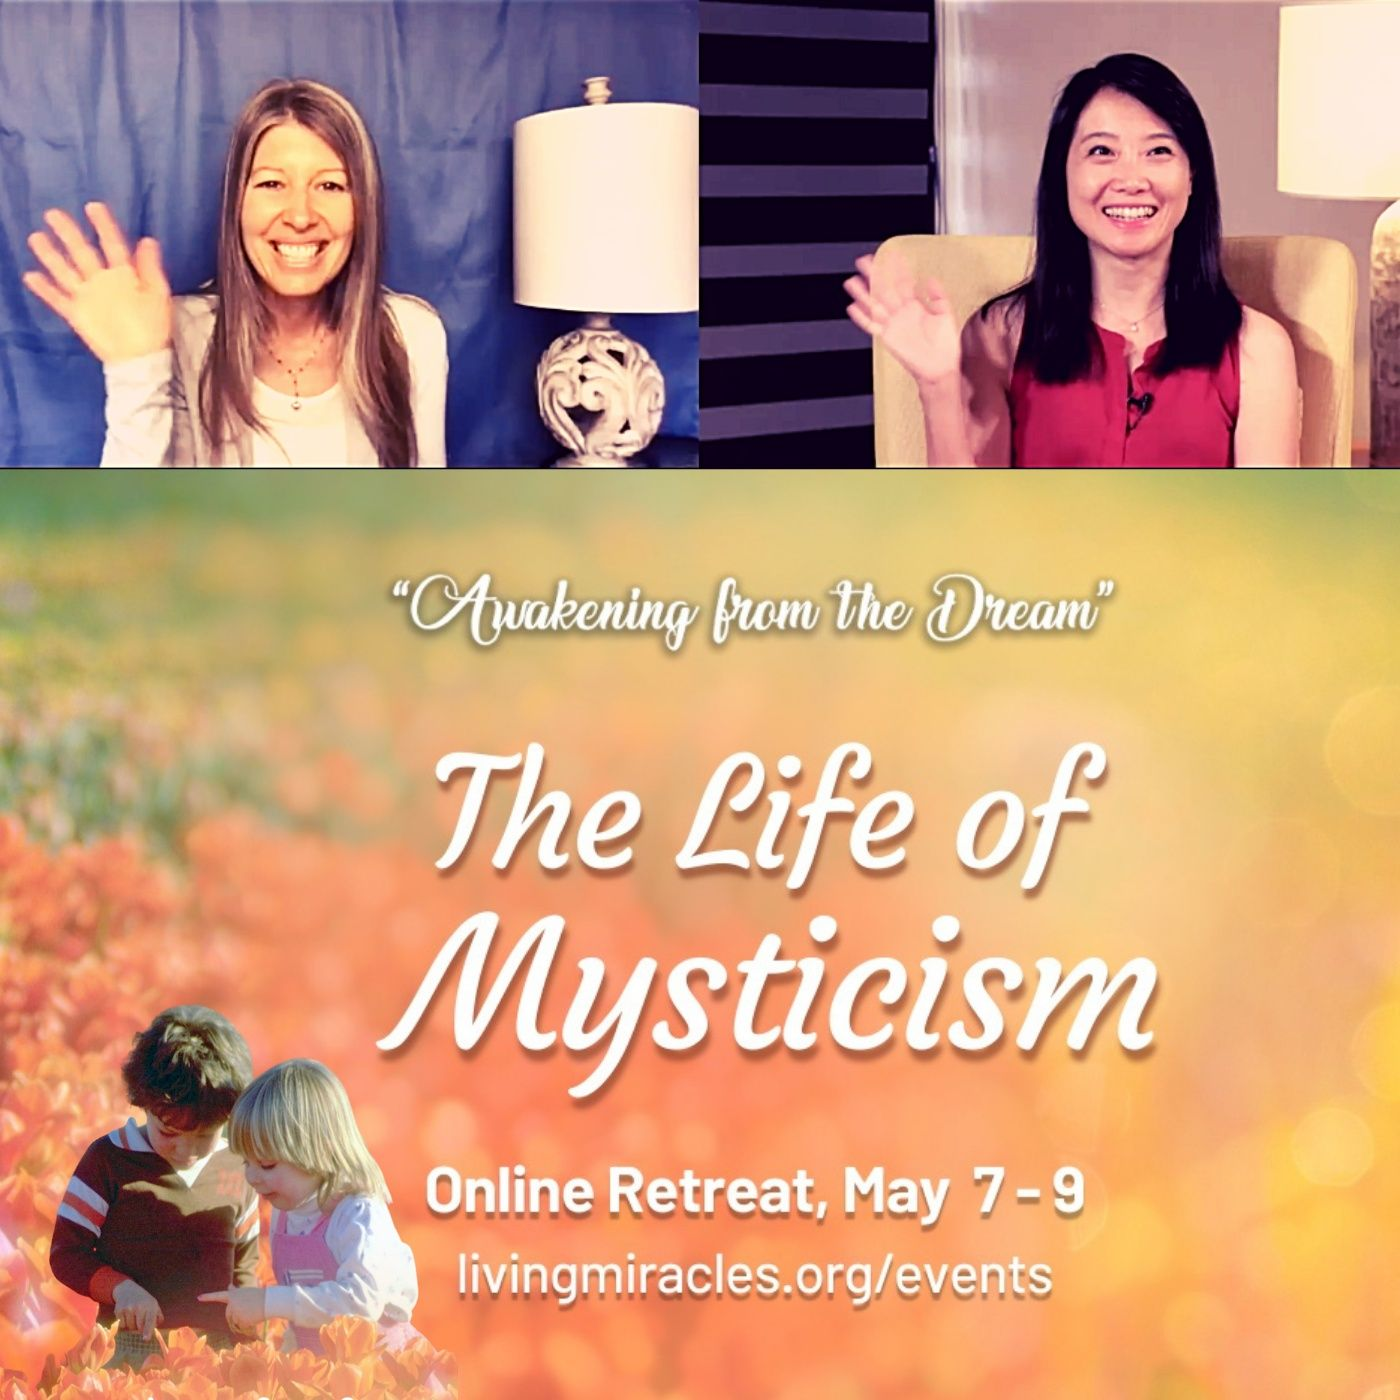 """""""The Life of Mysticism"""" Online Retreat - Opening Session with Frances Xu and Kirsten Buxton"""